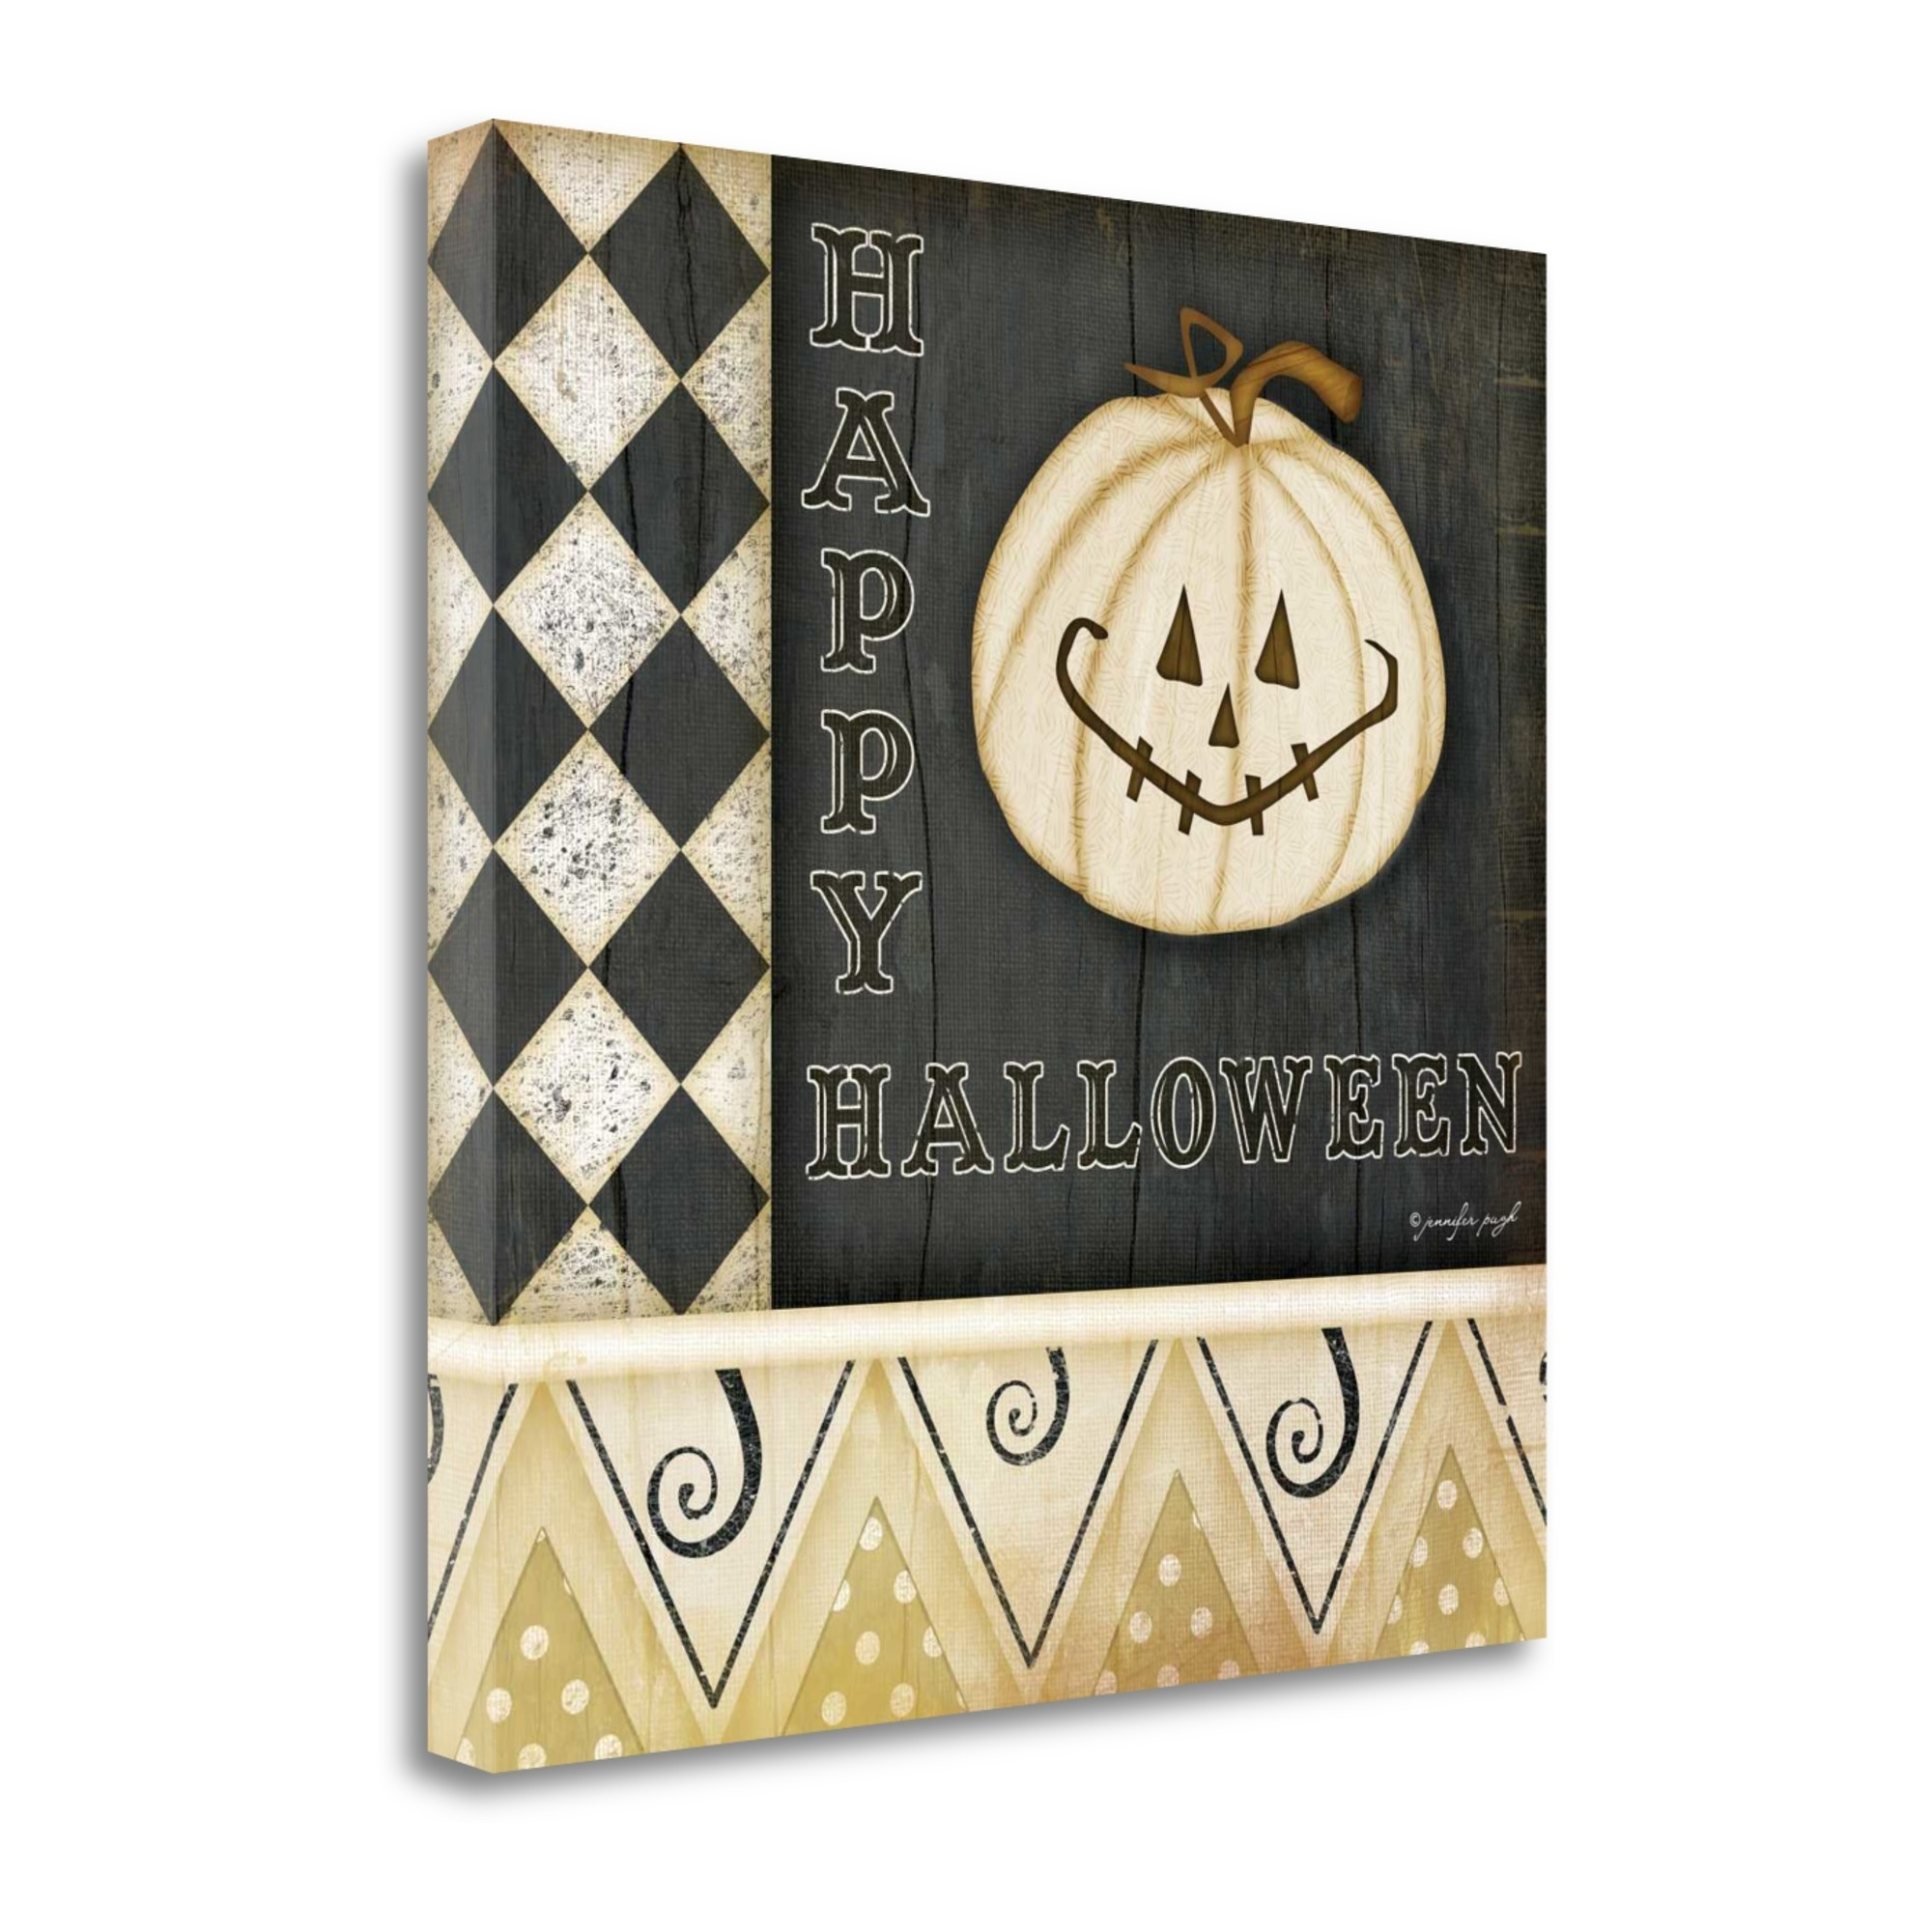 "Happy Halloween - Pumpkin By Jennifer Pugh, 20"" x 20\"" Fine Art Giclee Print on Gallery Wrap Canvas, Ready to Hang"